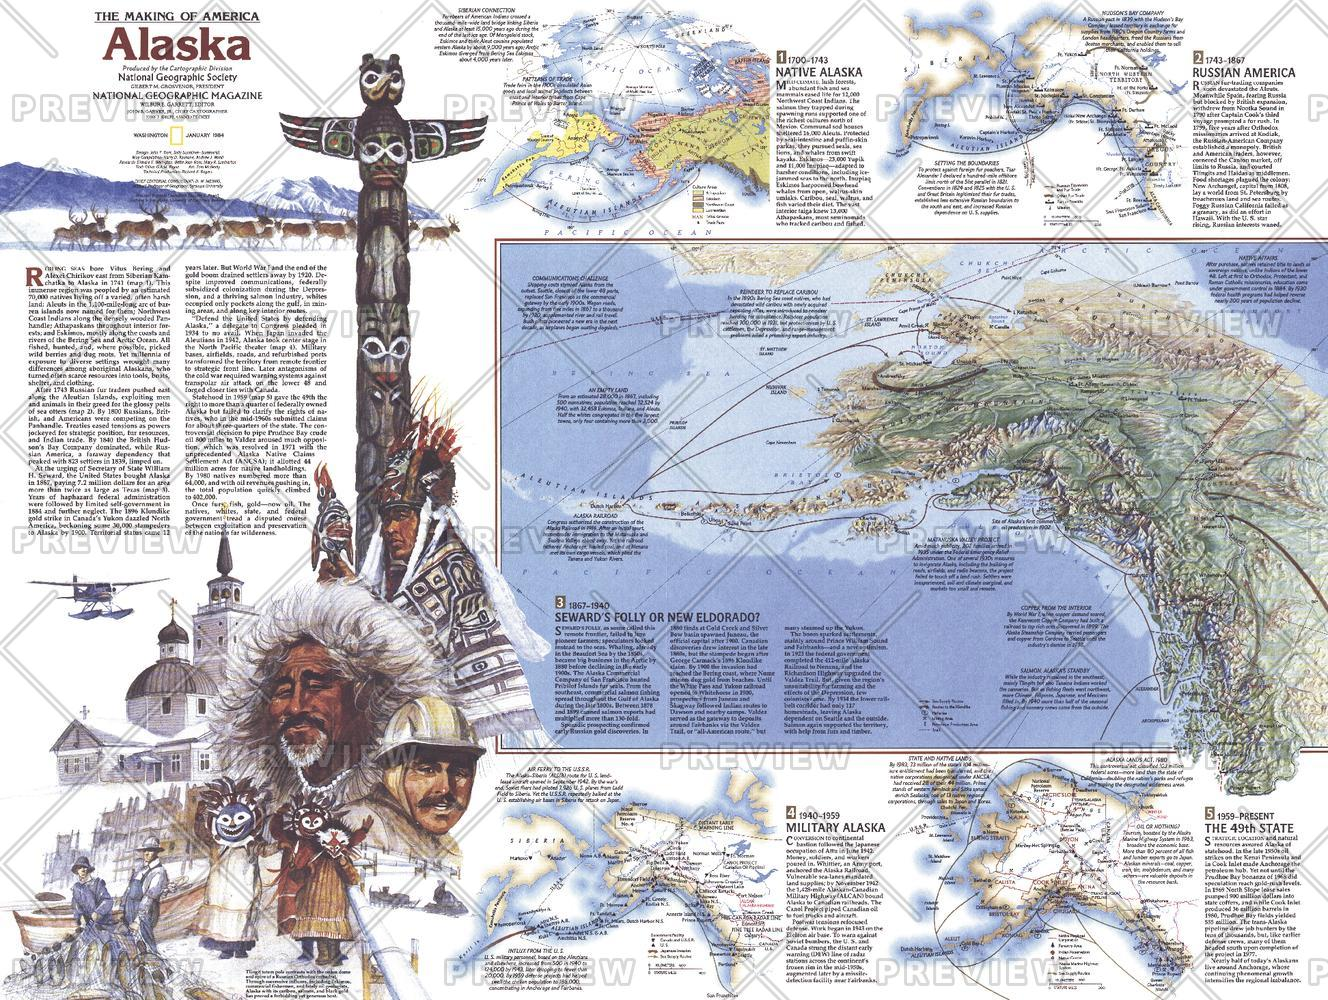 The Making of America, Alaska Theme - Published 1984